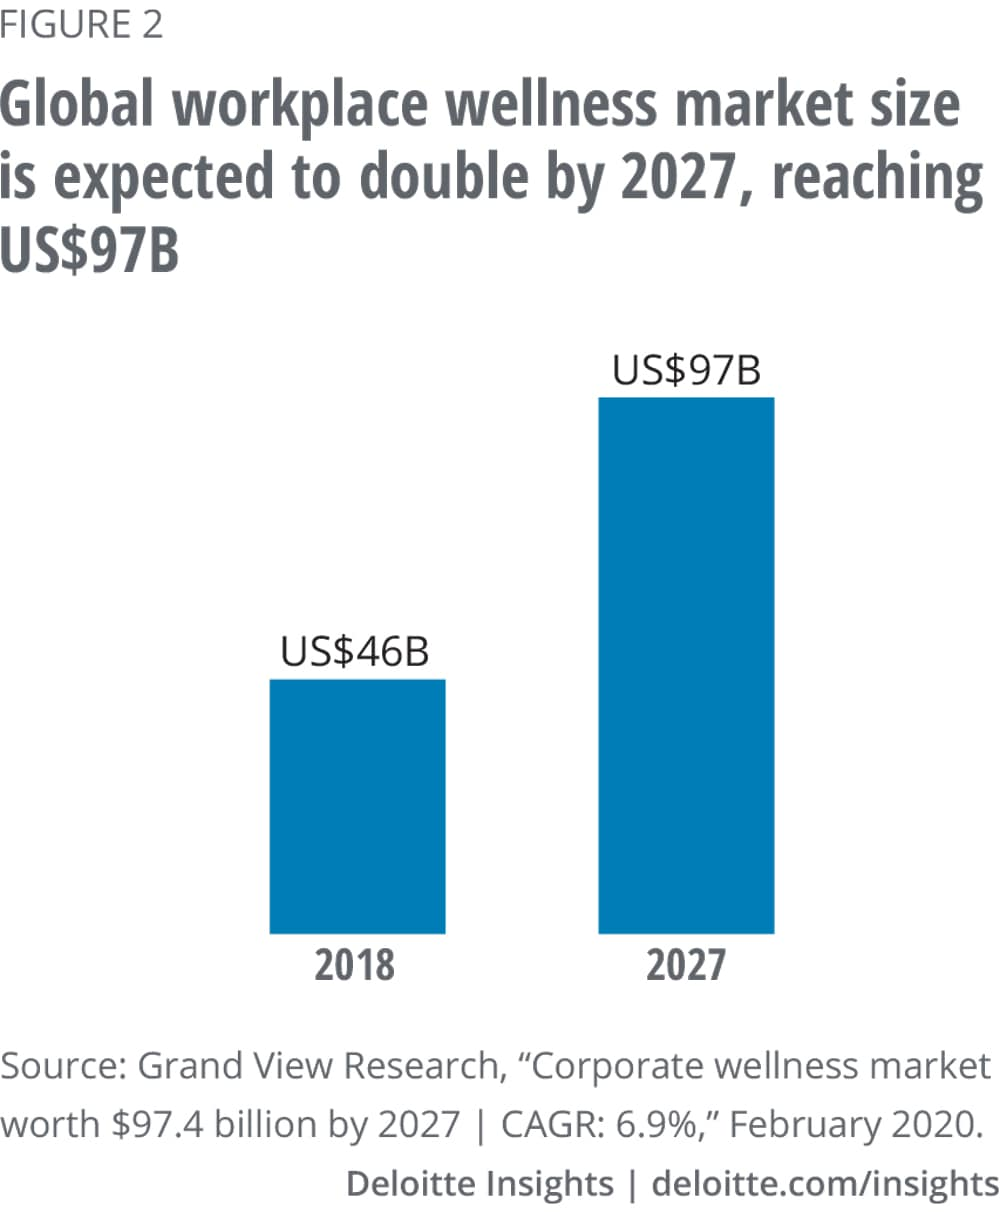 Global workplace wellness market size is expected to double by 2027, reaching US$97B